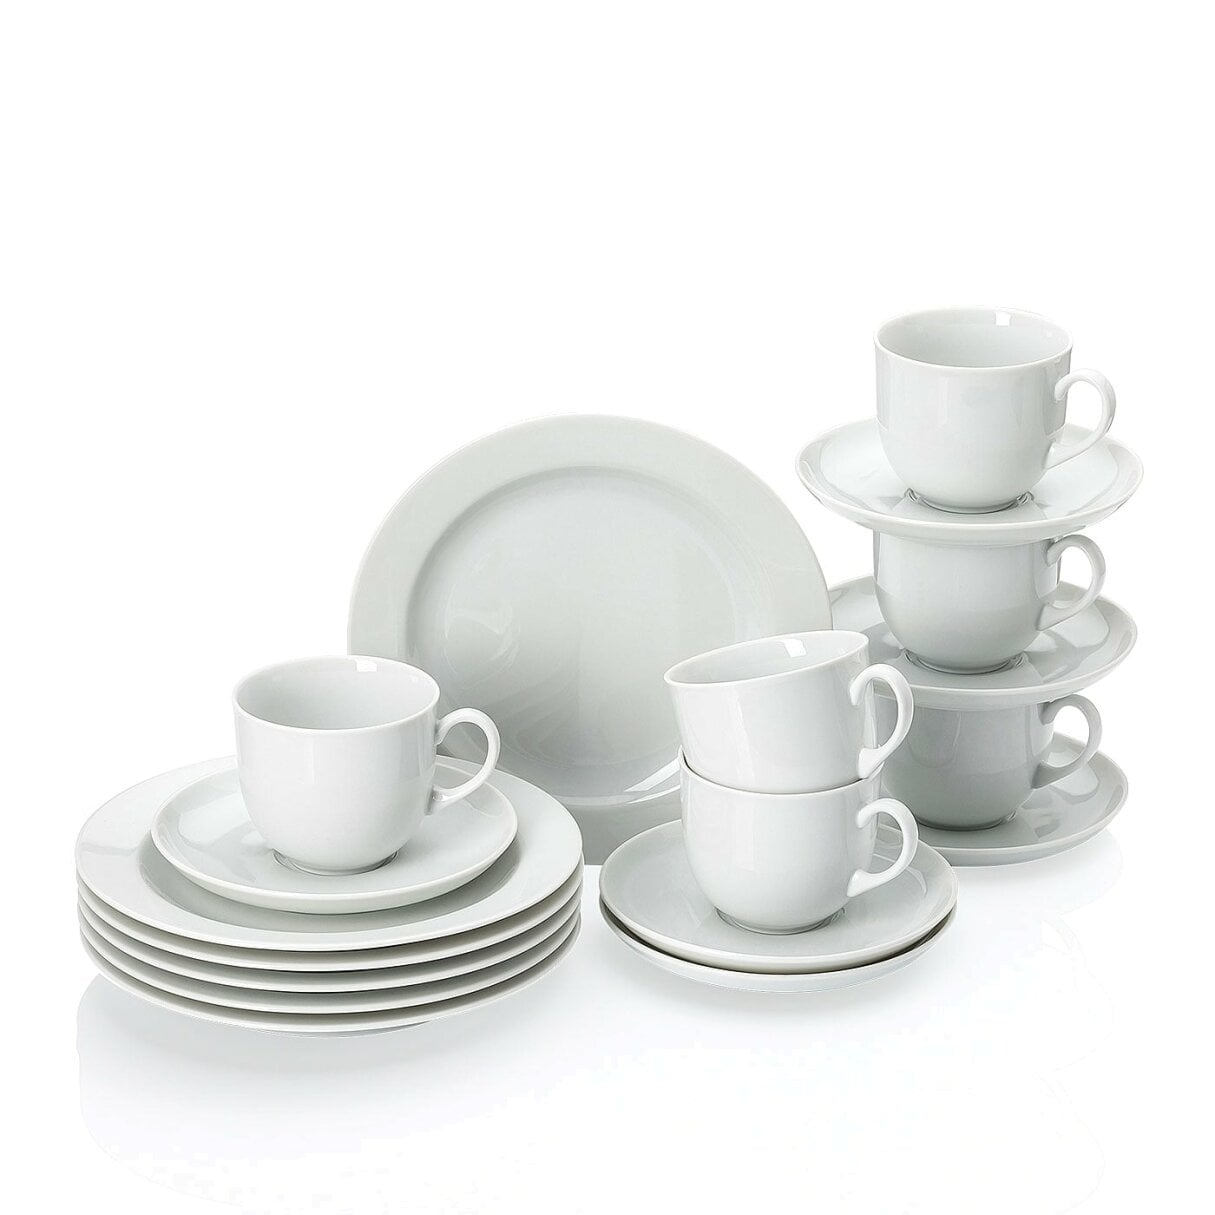 Coffee set, gift-boxed 18 pcs